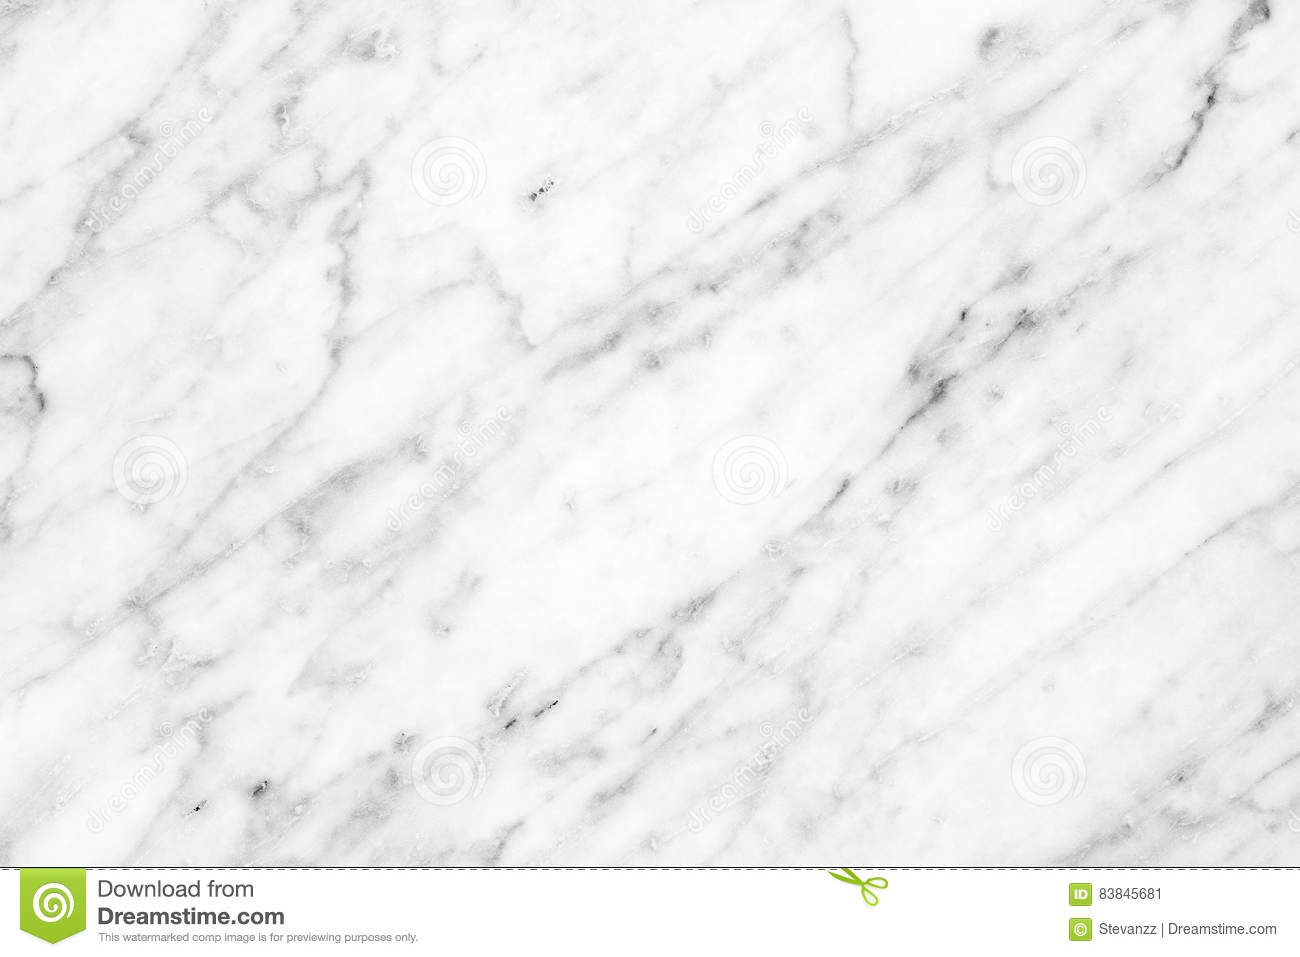 White marble countertops texture Seamless White Carrara Marble Natural Light For Bathroom Or Kitchen White Countertop High Resolution Texture And Pattern Dreamstimecom White Carrara Marble Natural Light Surface For Bathroom Or Kitchen